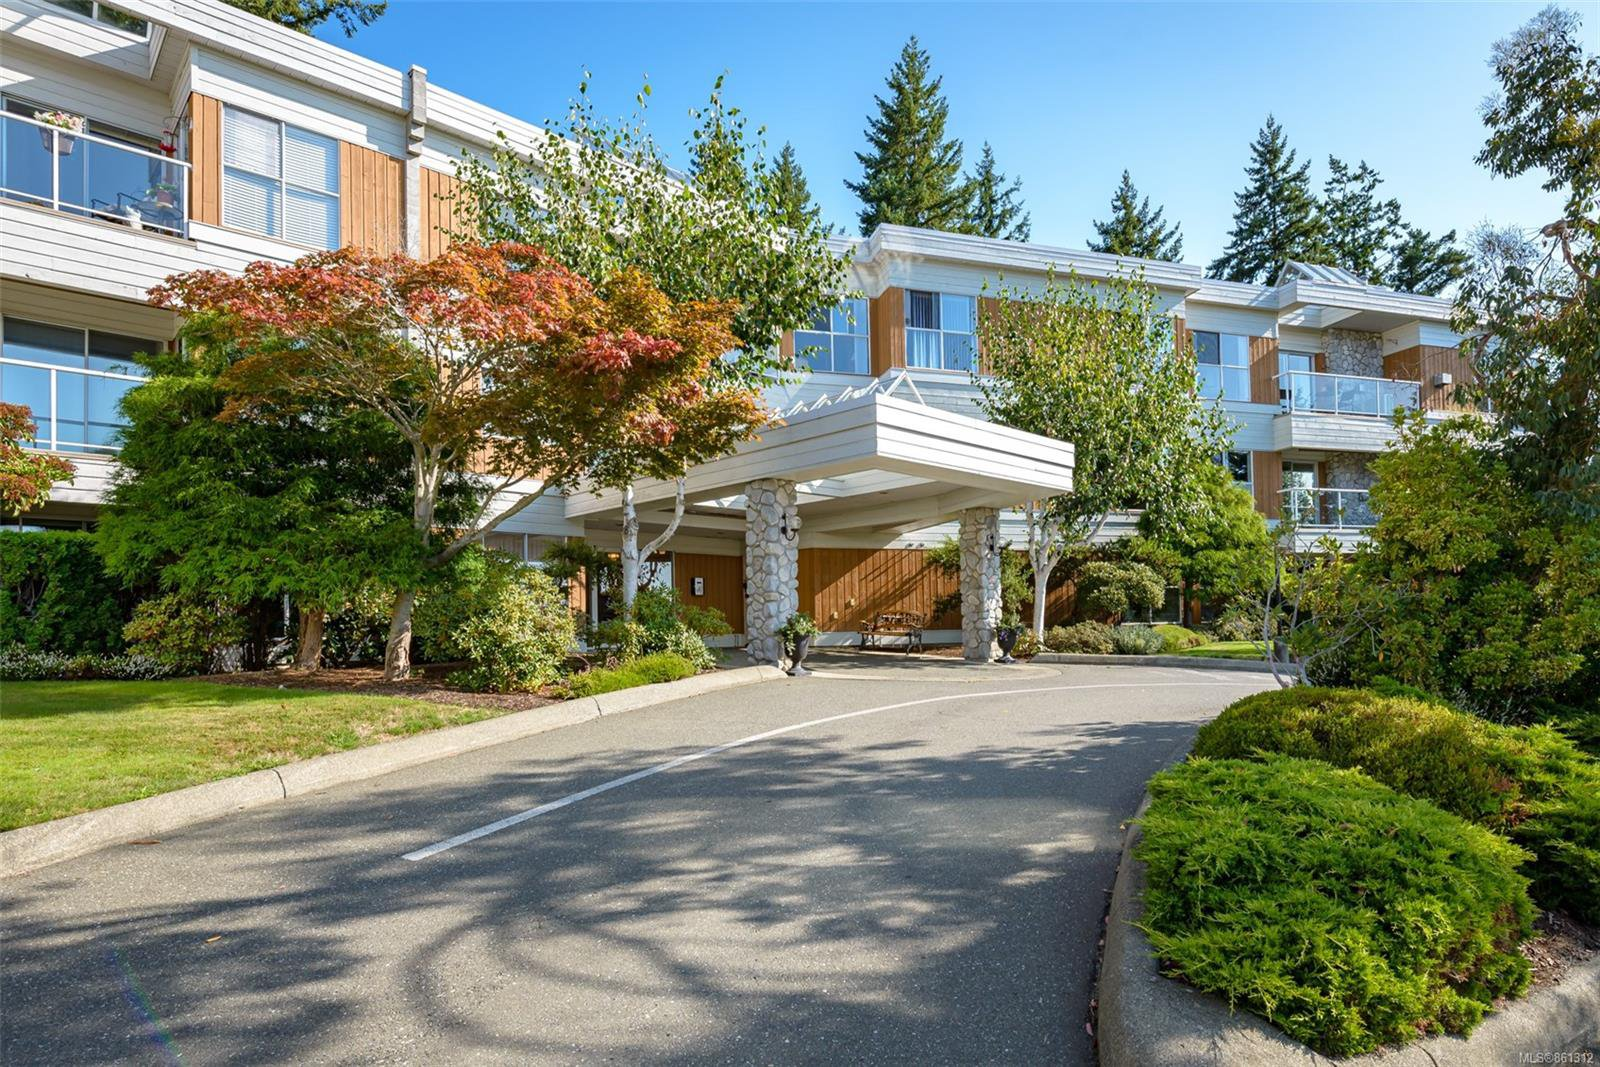 Main Photo: 308 1686 Balmoral Ave in : CV Comox (Town of) Condo for sale (Comox Valley)  : MLS®# 861312